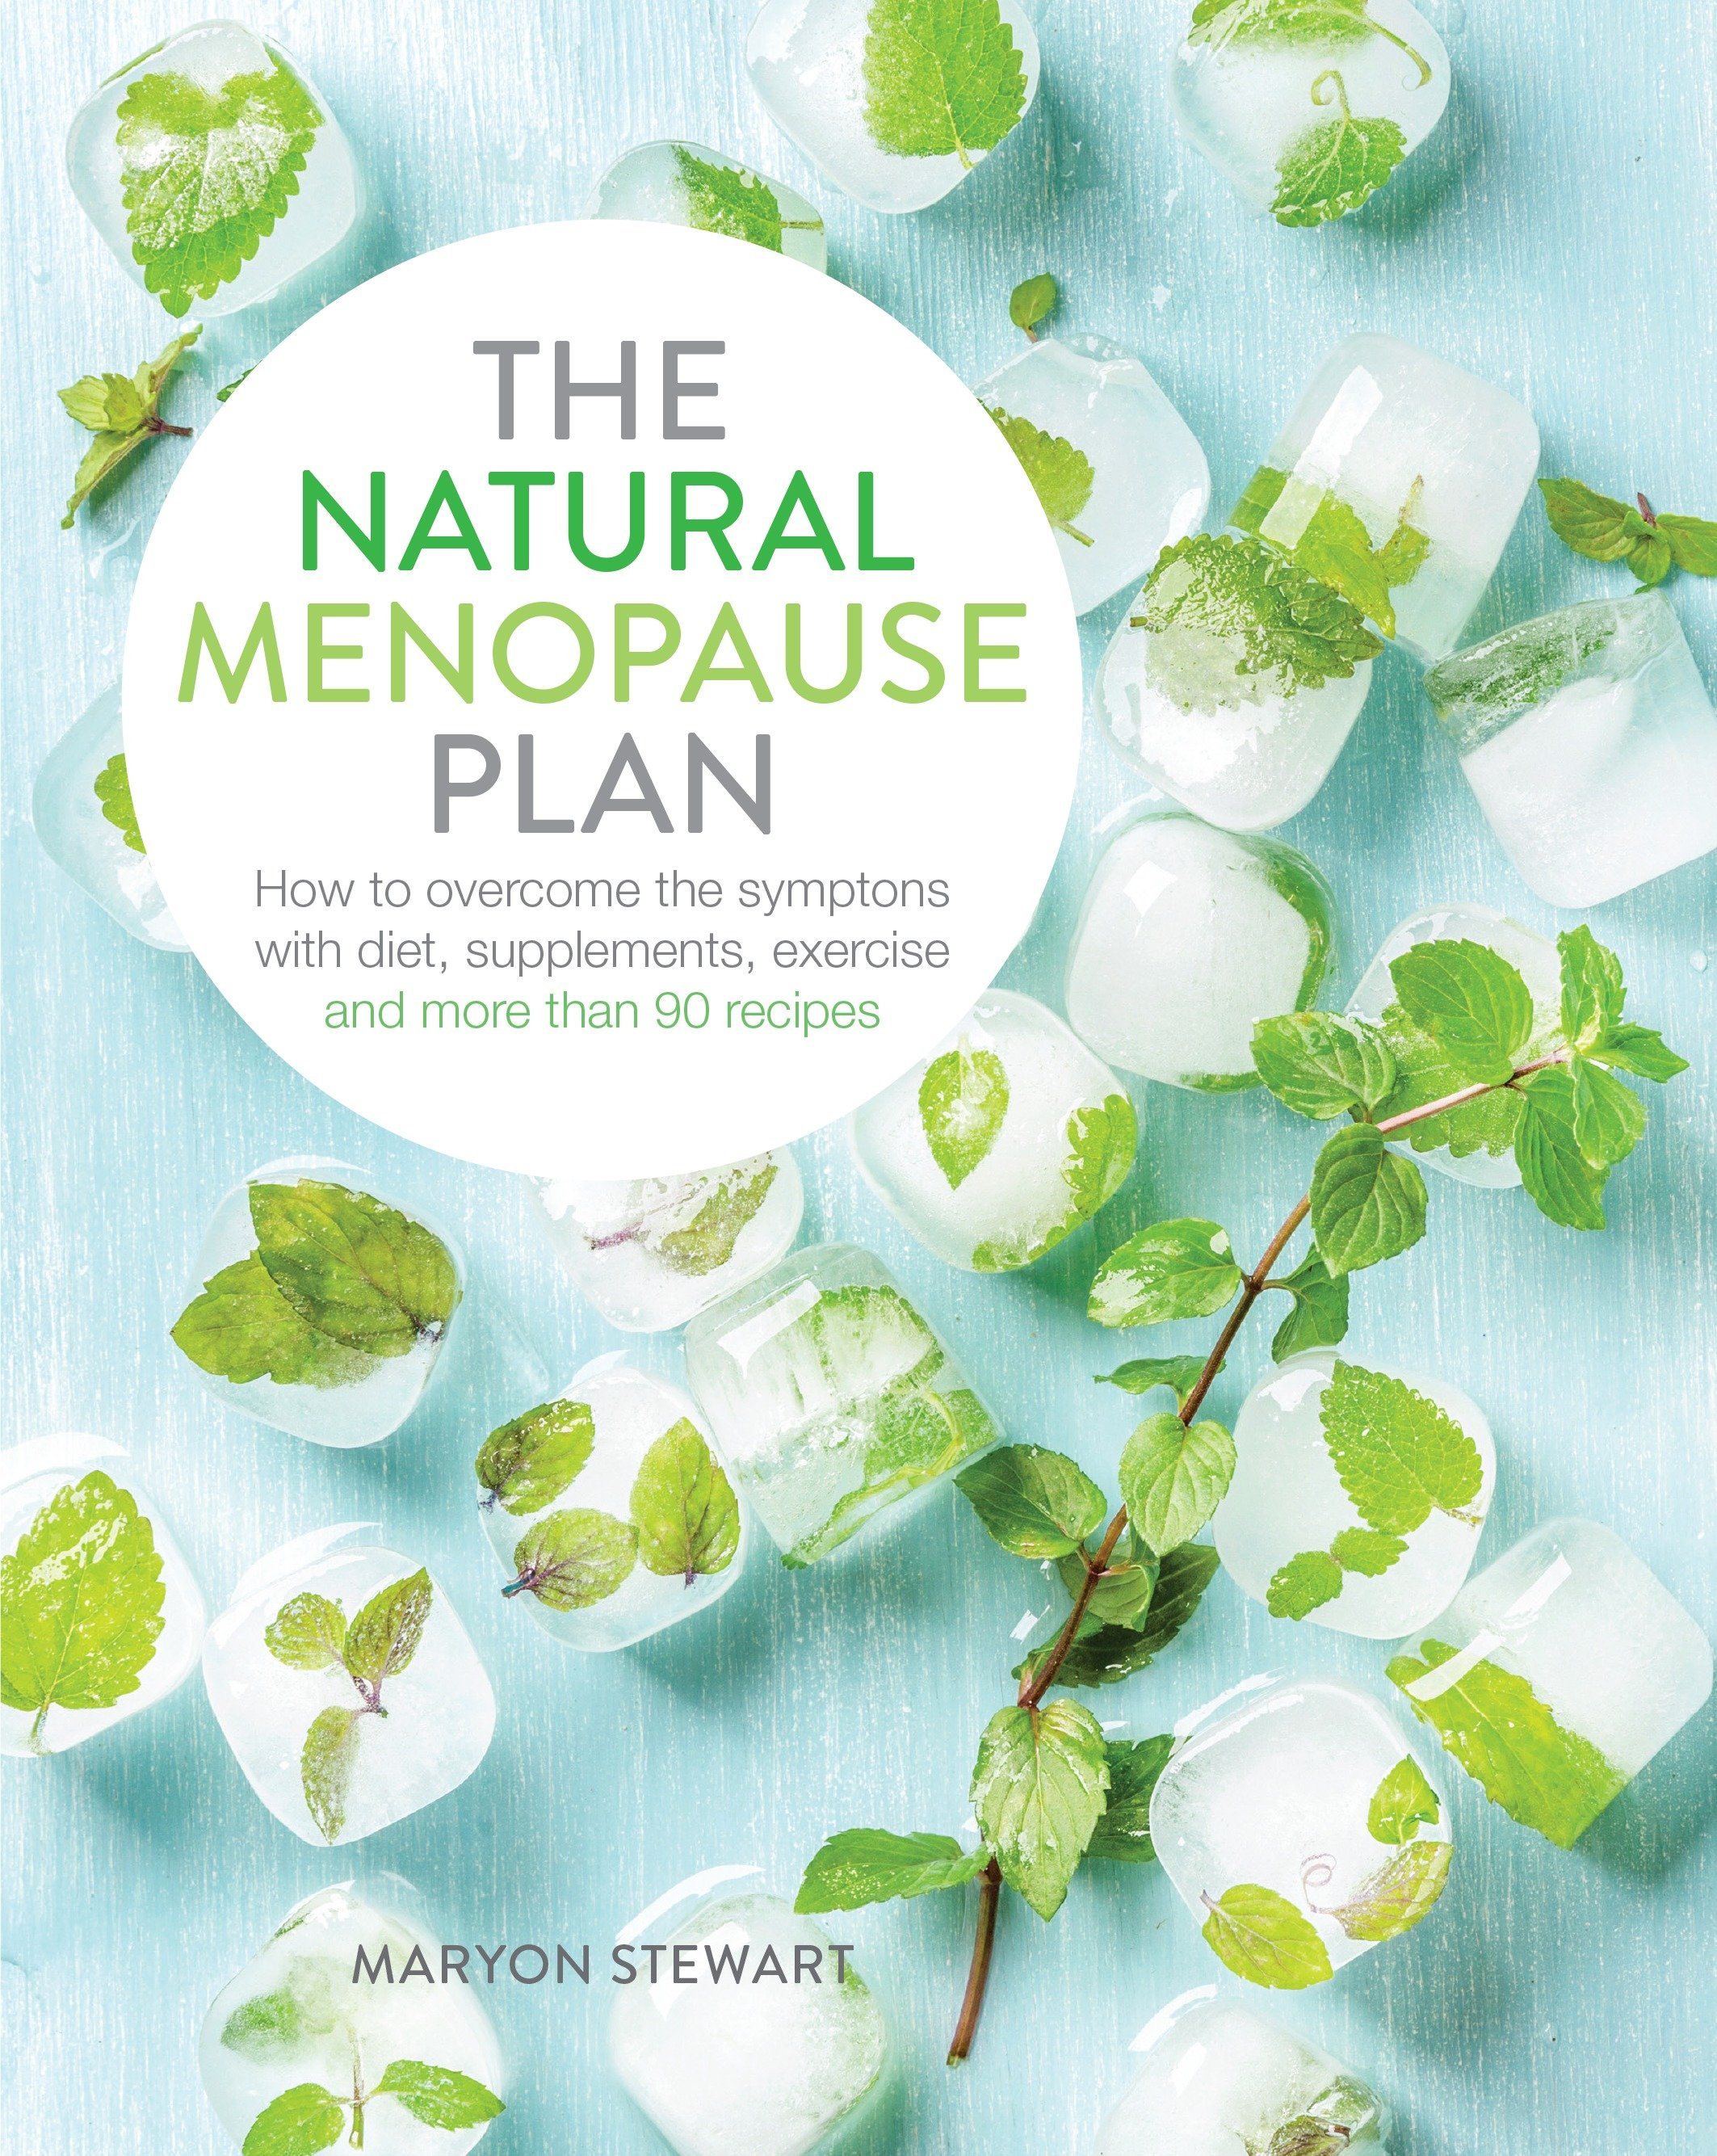 The Natural Menopause Plan Over the Symptoms with Diet, Supplements, Exercise and More Than 90 Recipes